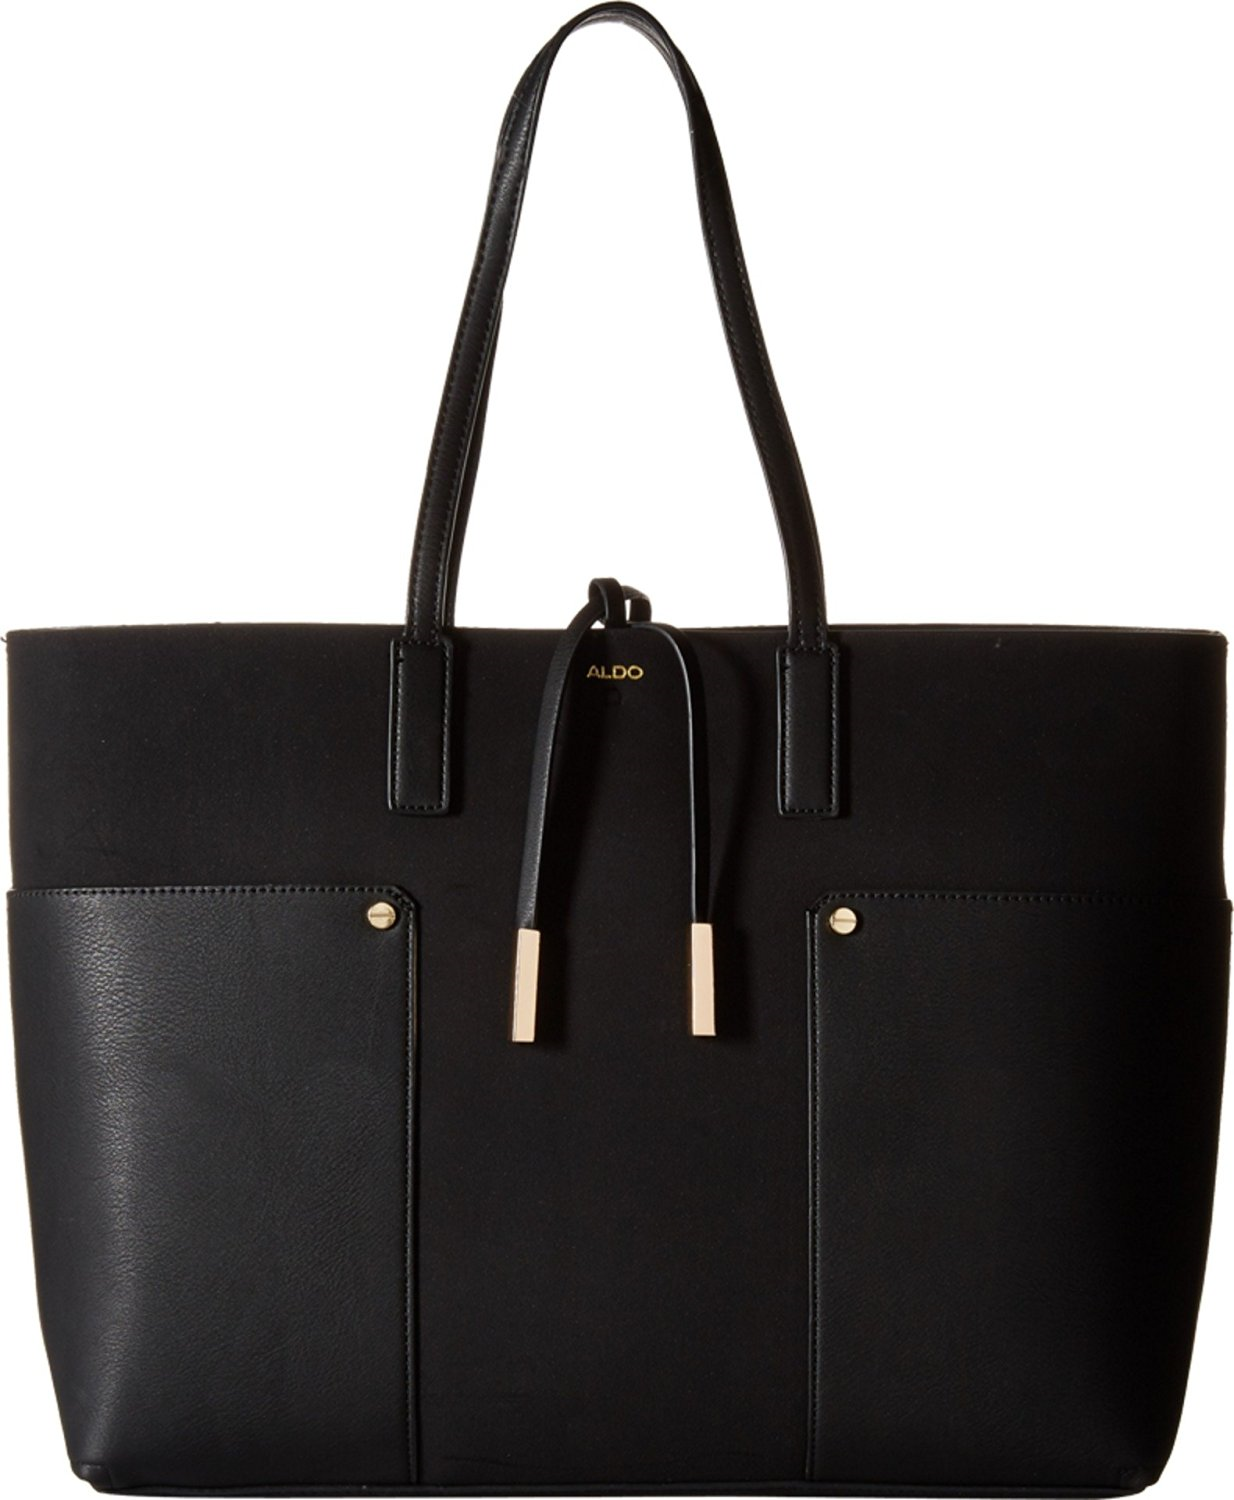 d804e316df Aldo Black 'Peachey' Tote Bag | accessories' | Bags, Tote handbags ...